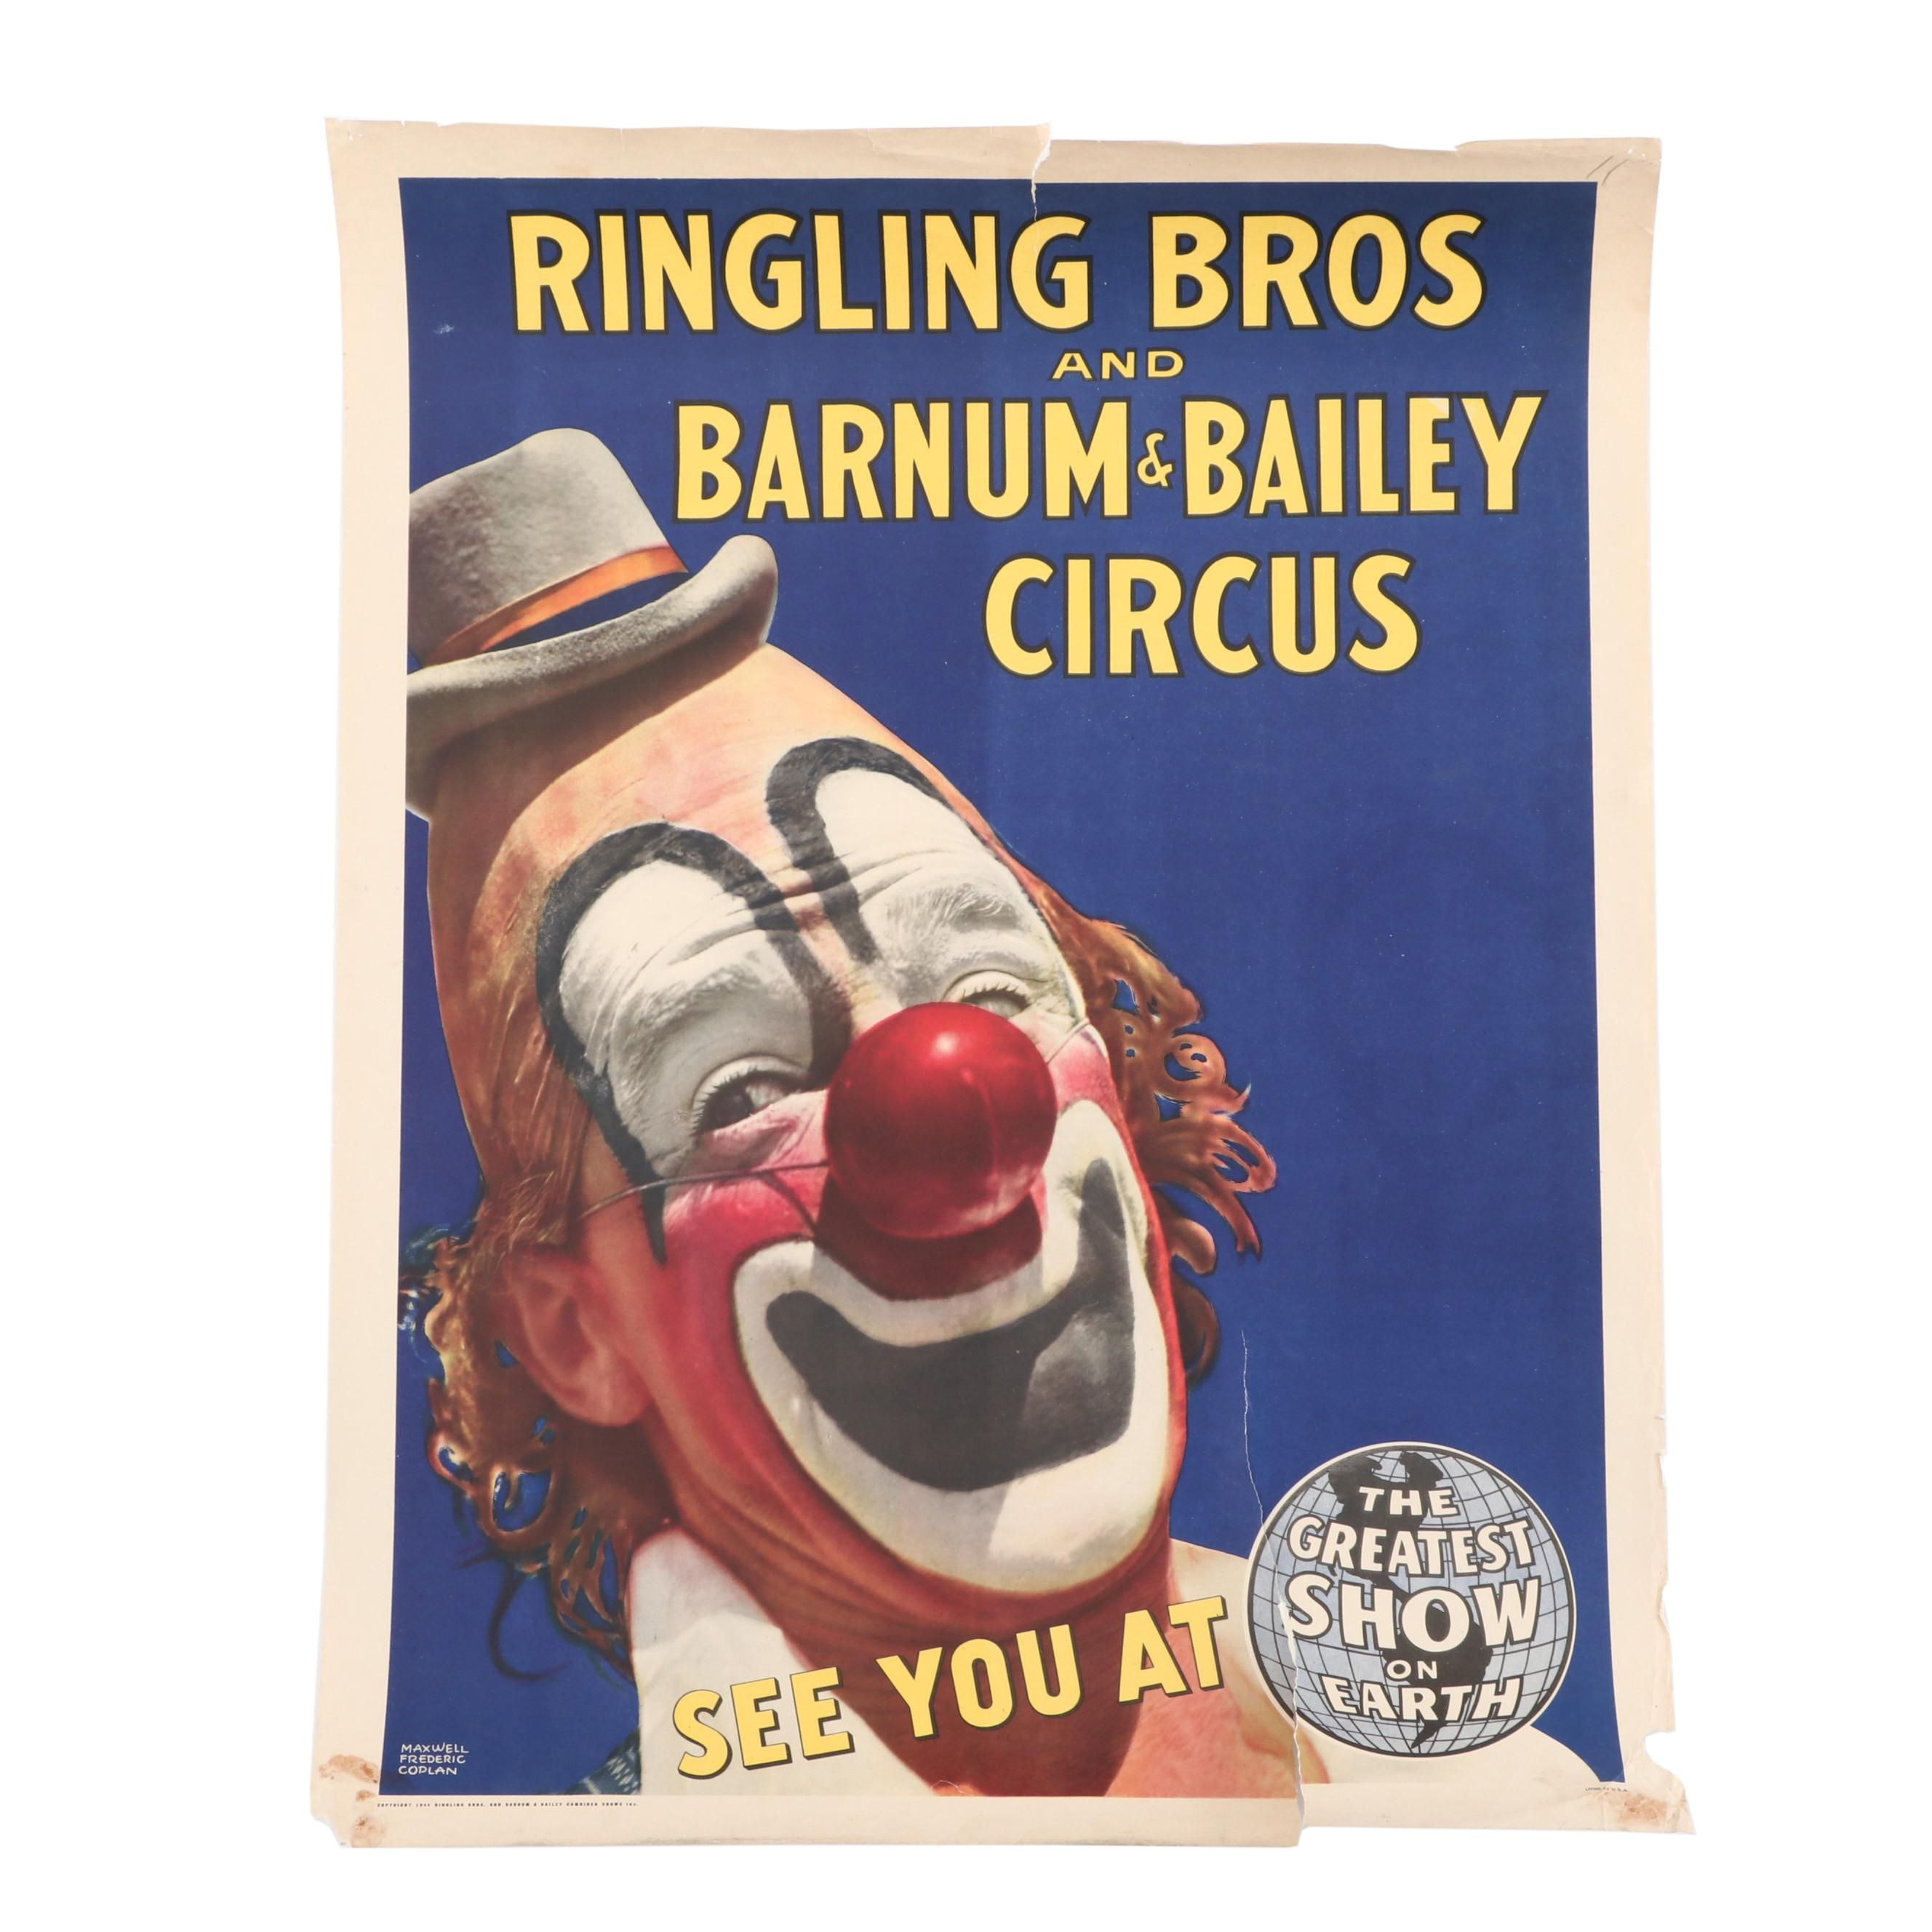 1944 Advertising Poster for Ringling Bros and Barnum & Bailey Circus